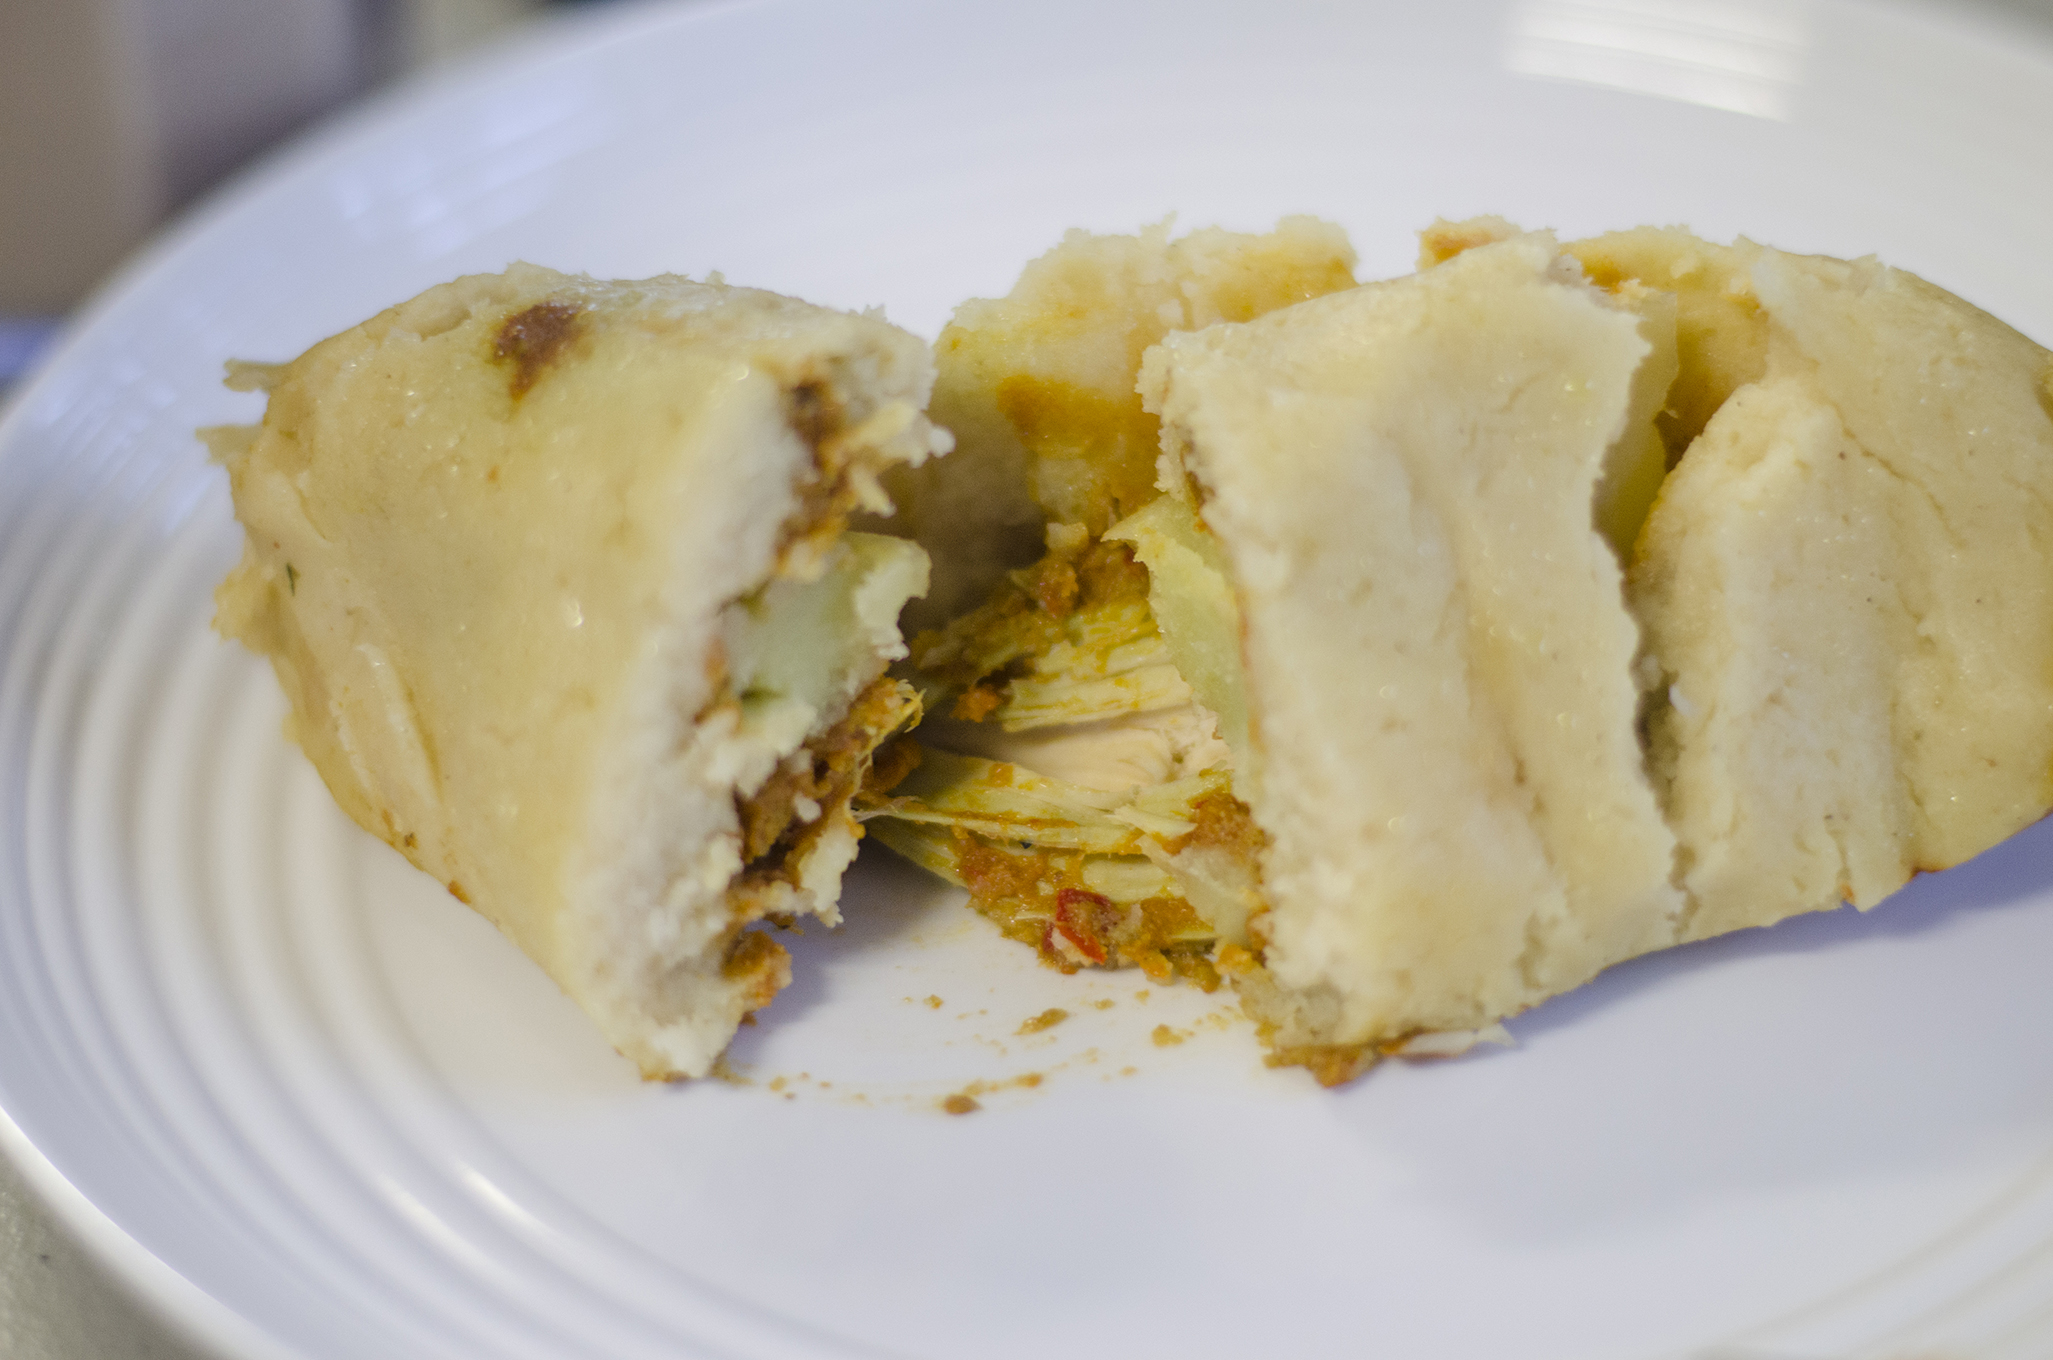 A tamale from El Comal in Leamington, Ontario.